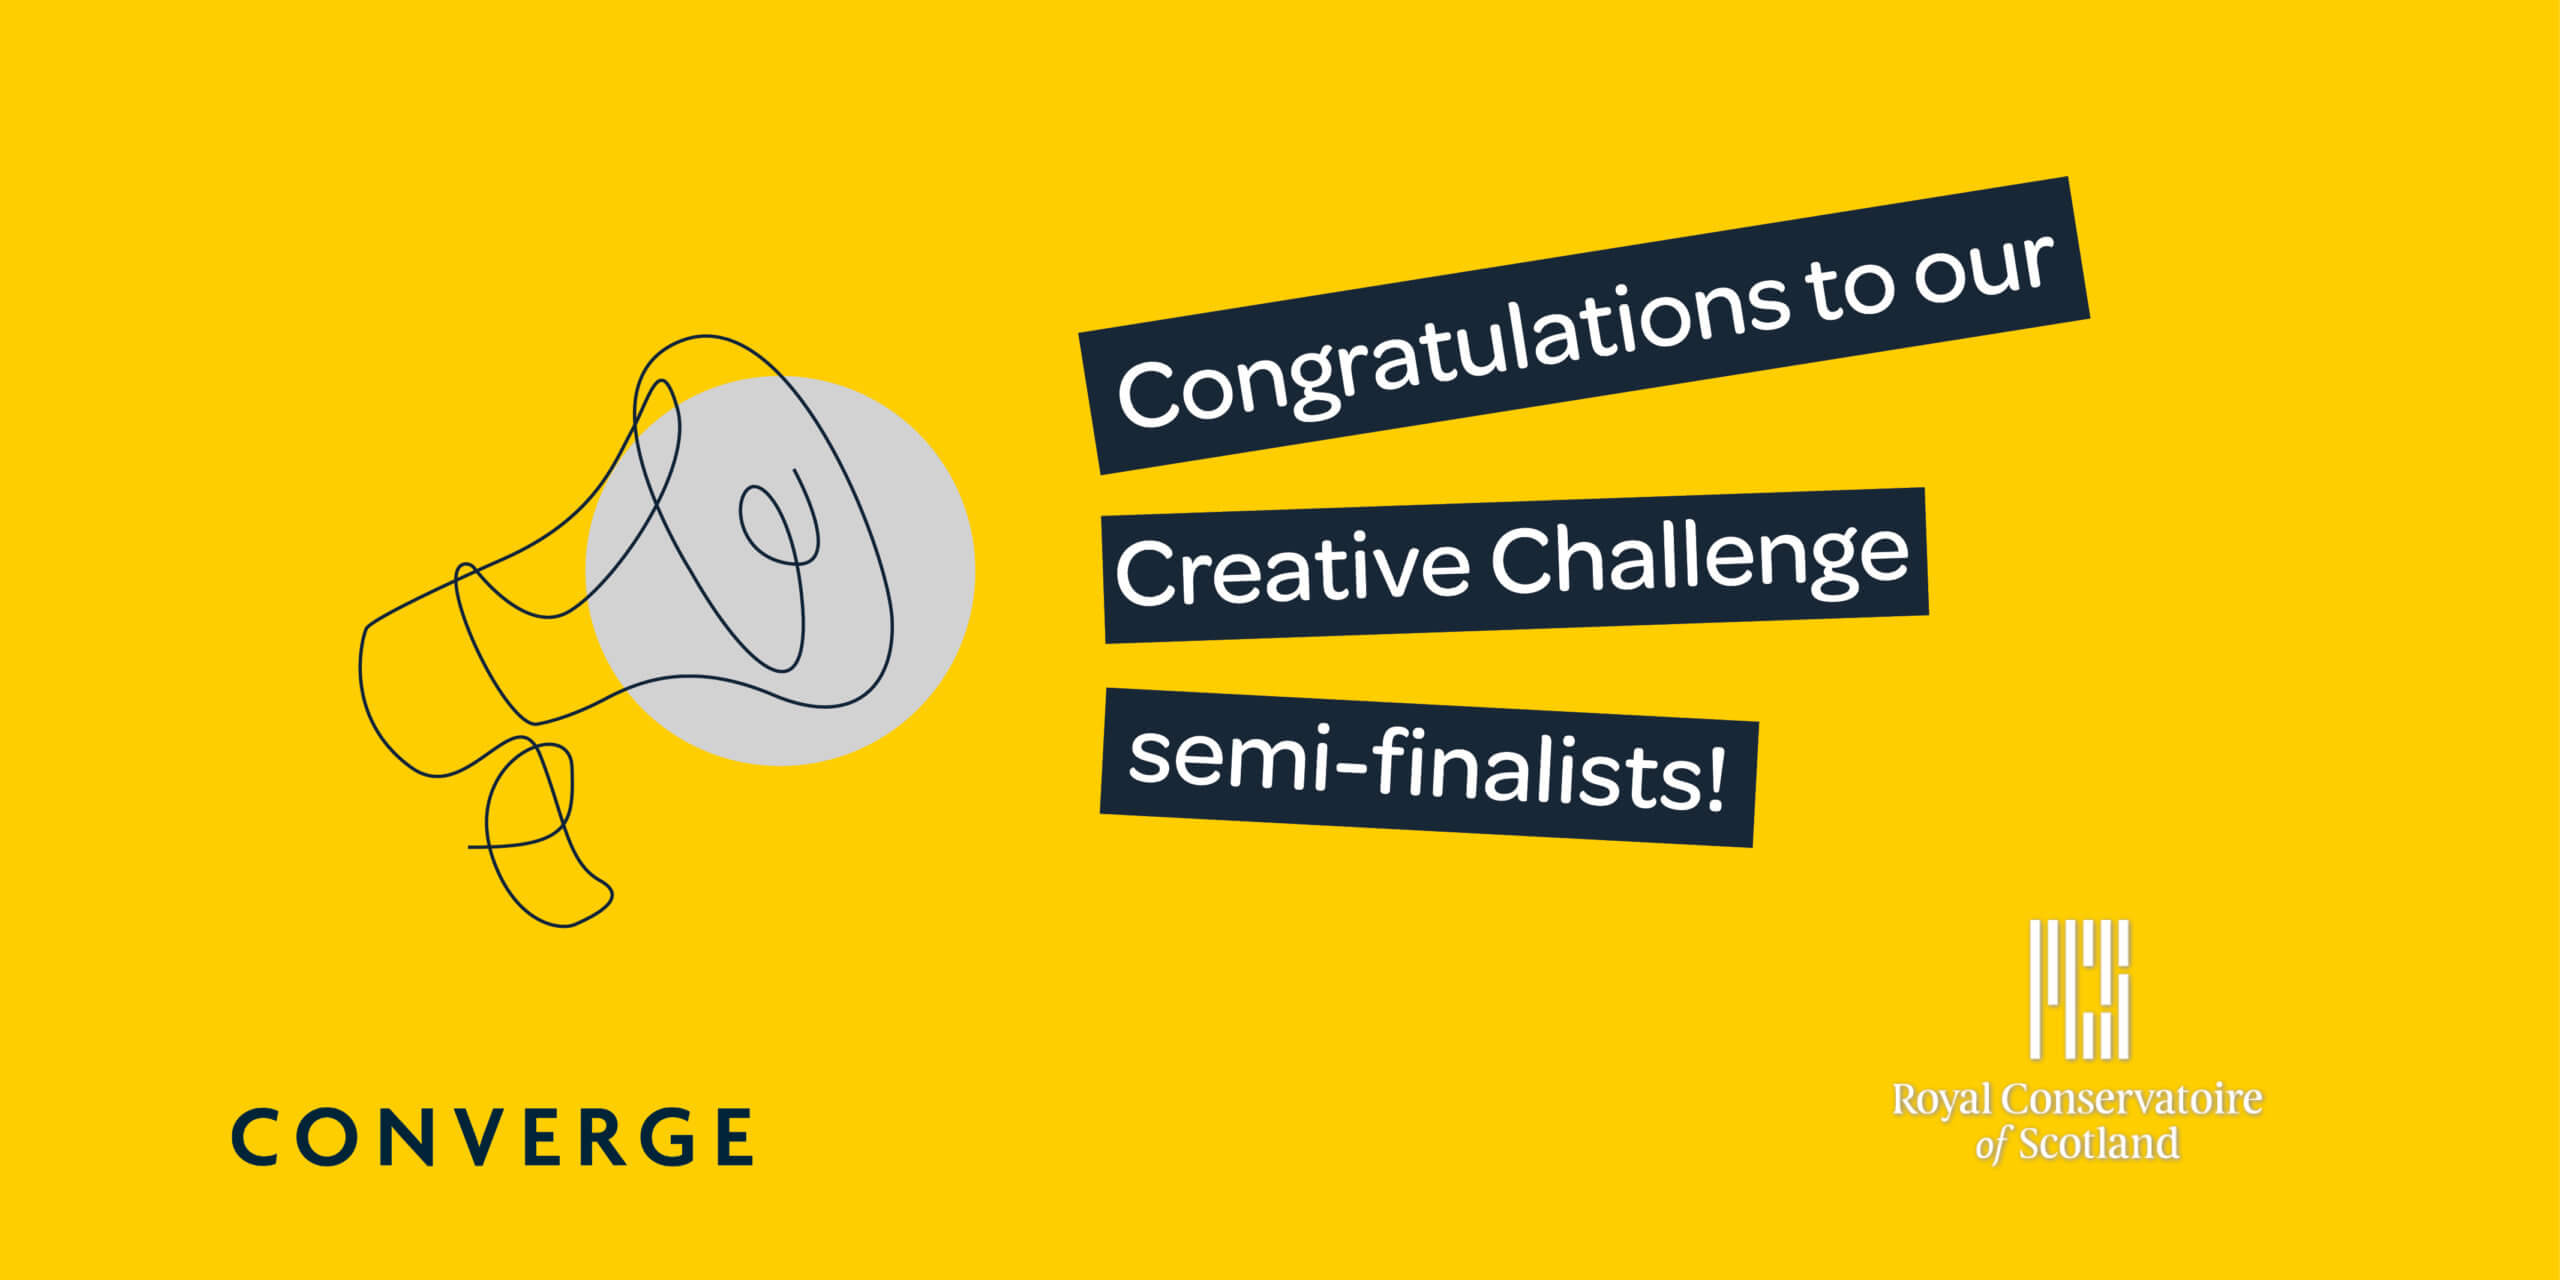 Innovative RCS graduates in semi-finals of Converge Image